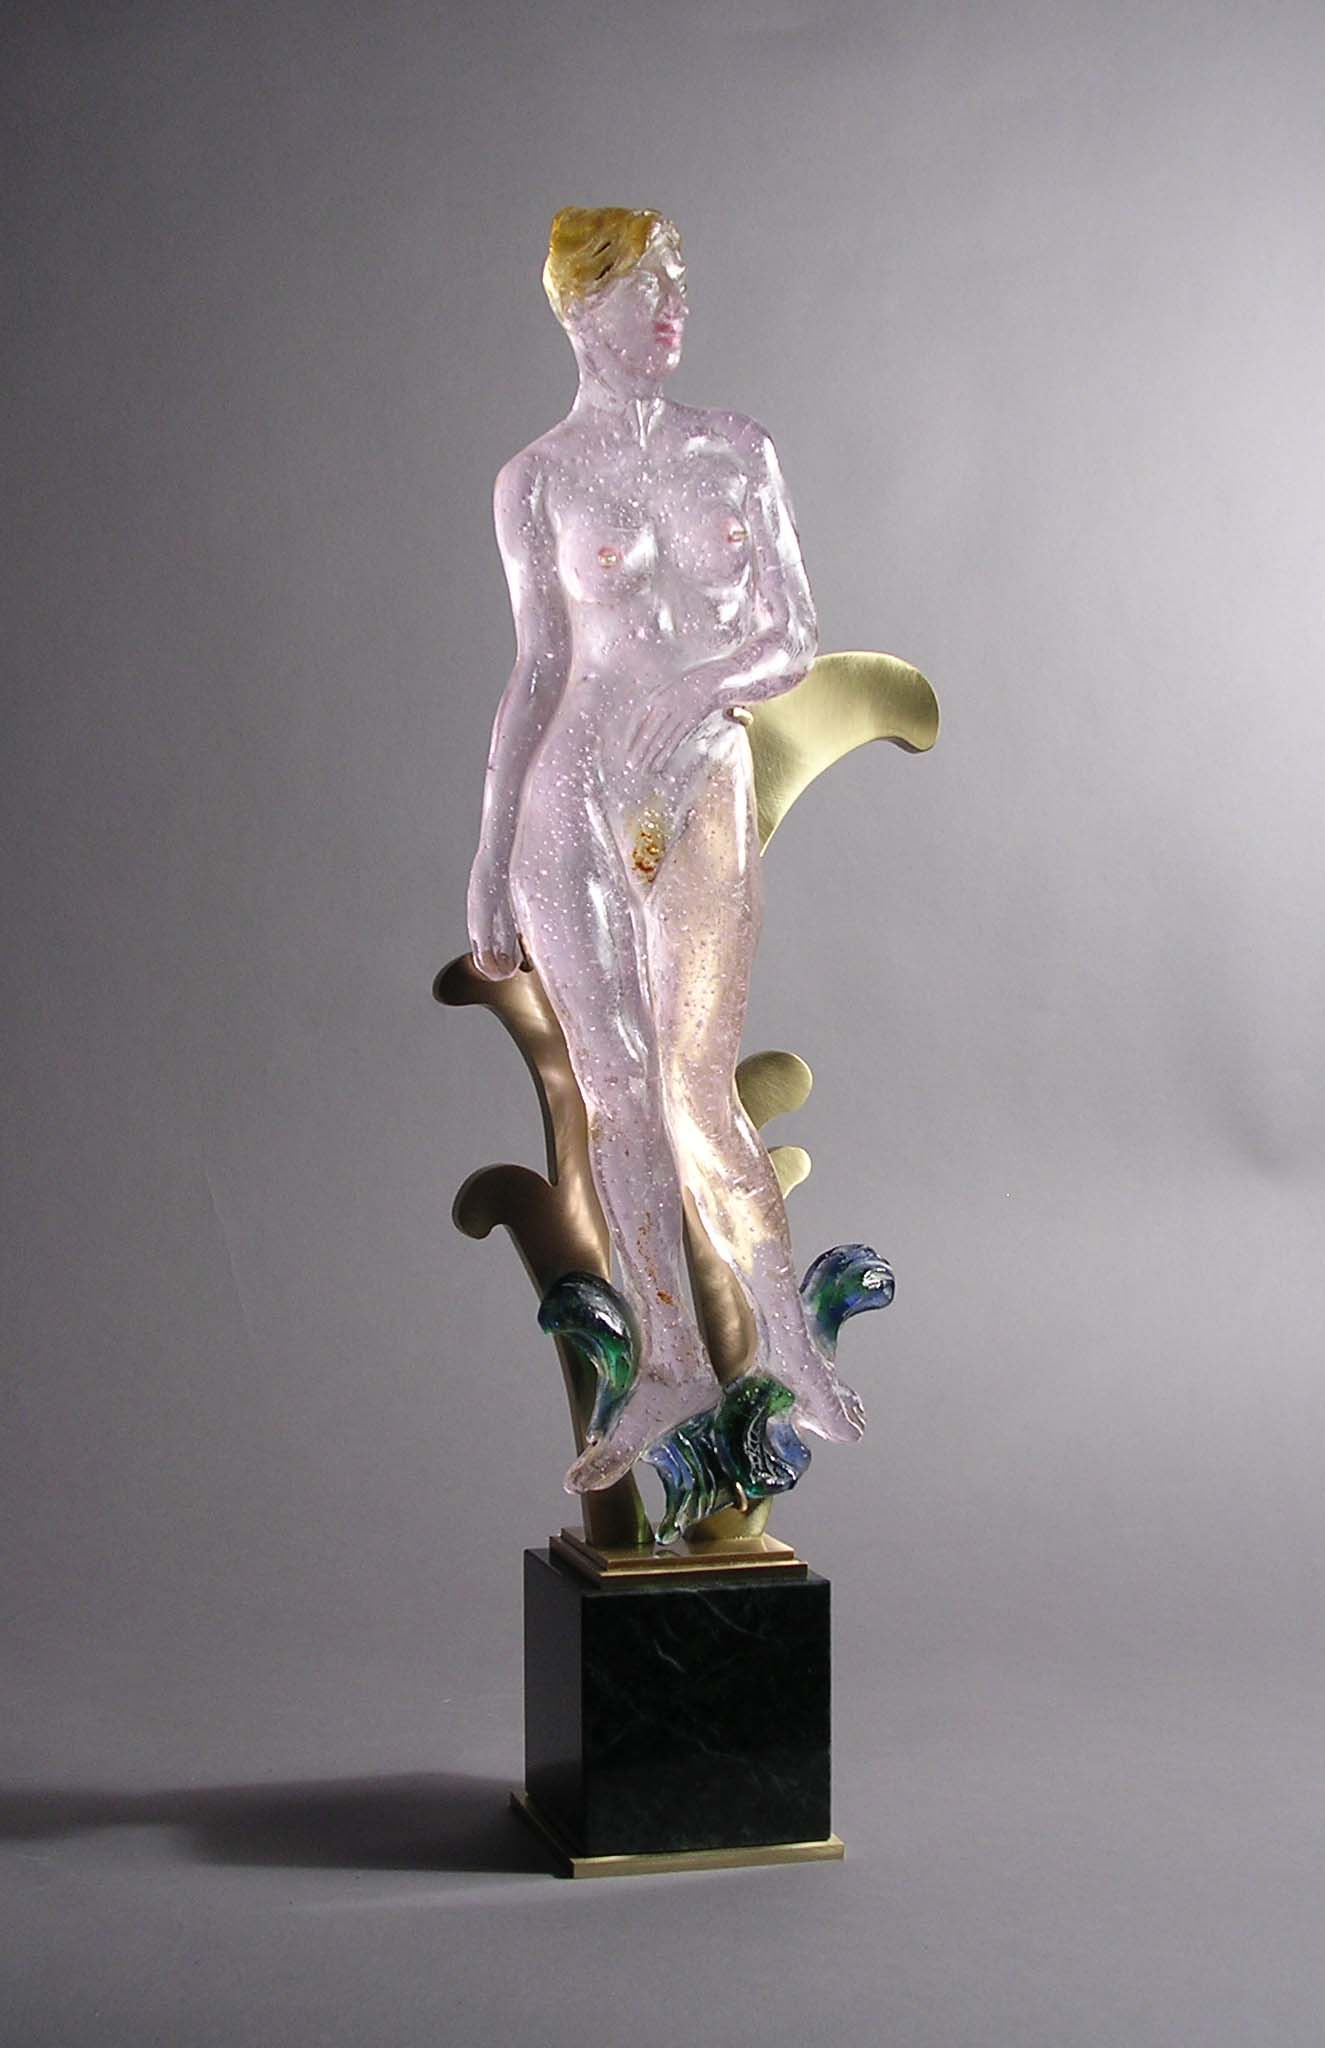 Glass Venus Figurine